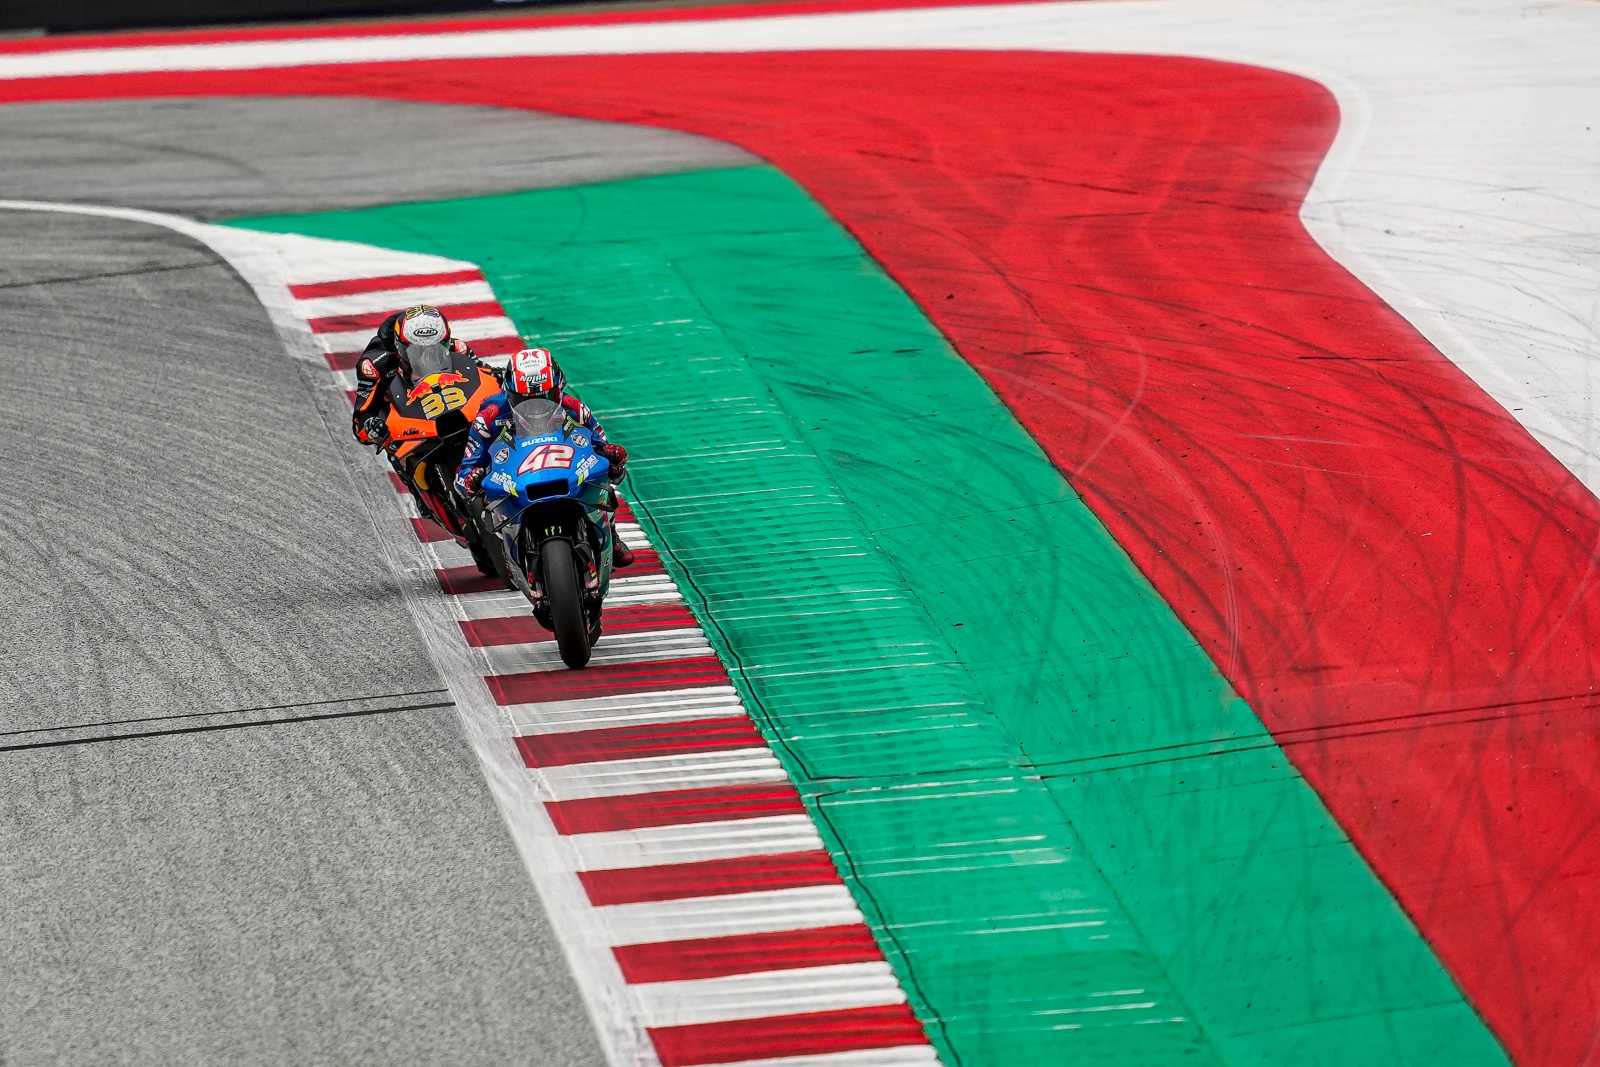 MEASURED 2ND PLACE FOR MIR IN DRAMA-FILLED STYRIAN GP